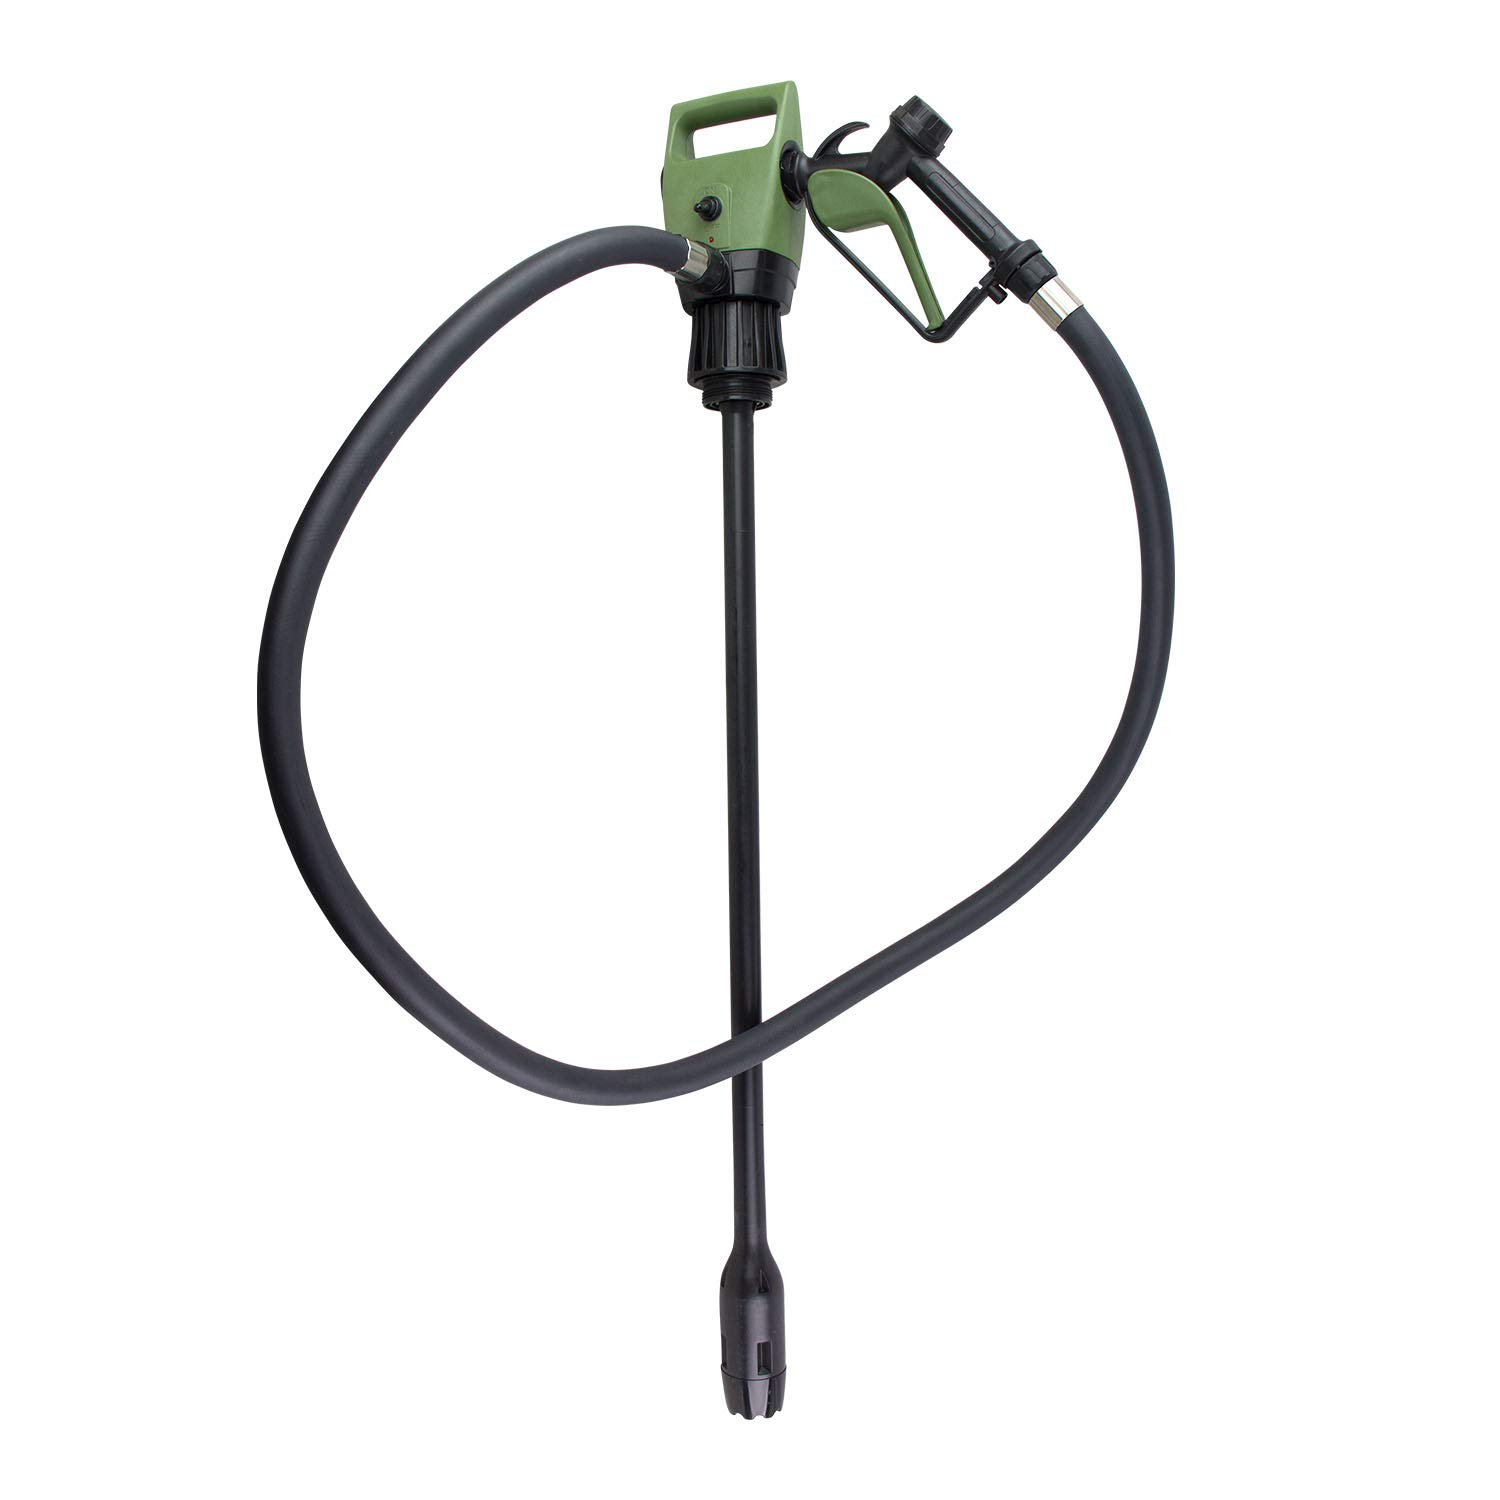 TERA PUMP TReDRUM 33.5-49'' IBC Totes Telescopic Plug-in Electric Drum Barrel Pump (Option - Rechargeable Battery Set/Car Bettery DC Cable) for DEF, Diesel, Water(not for Drinking Water)